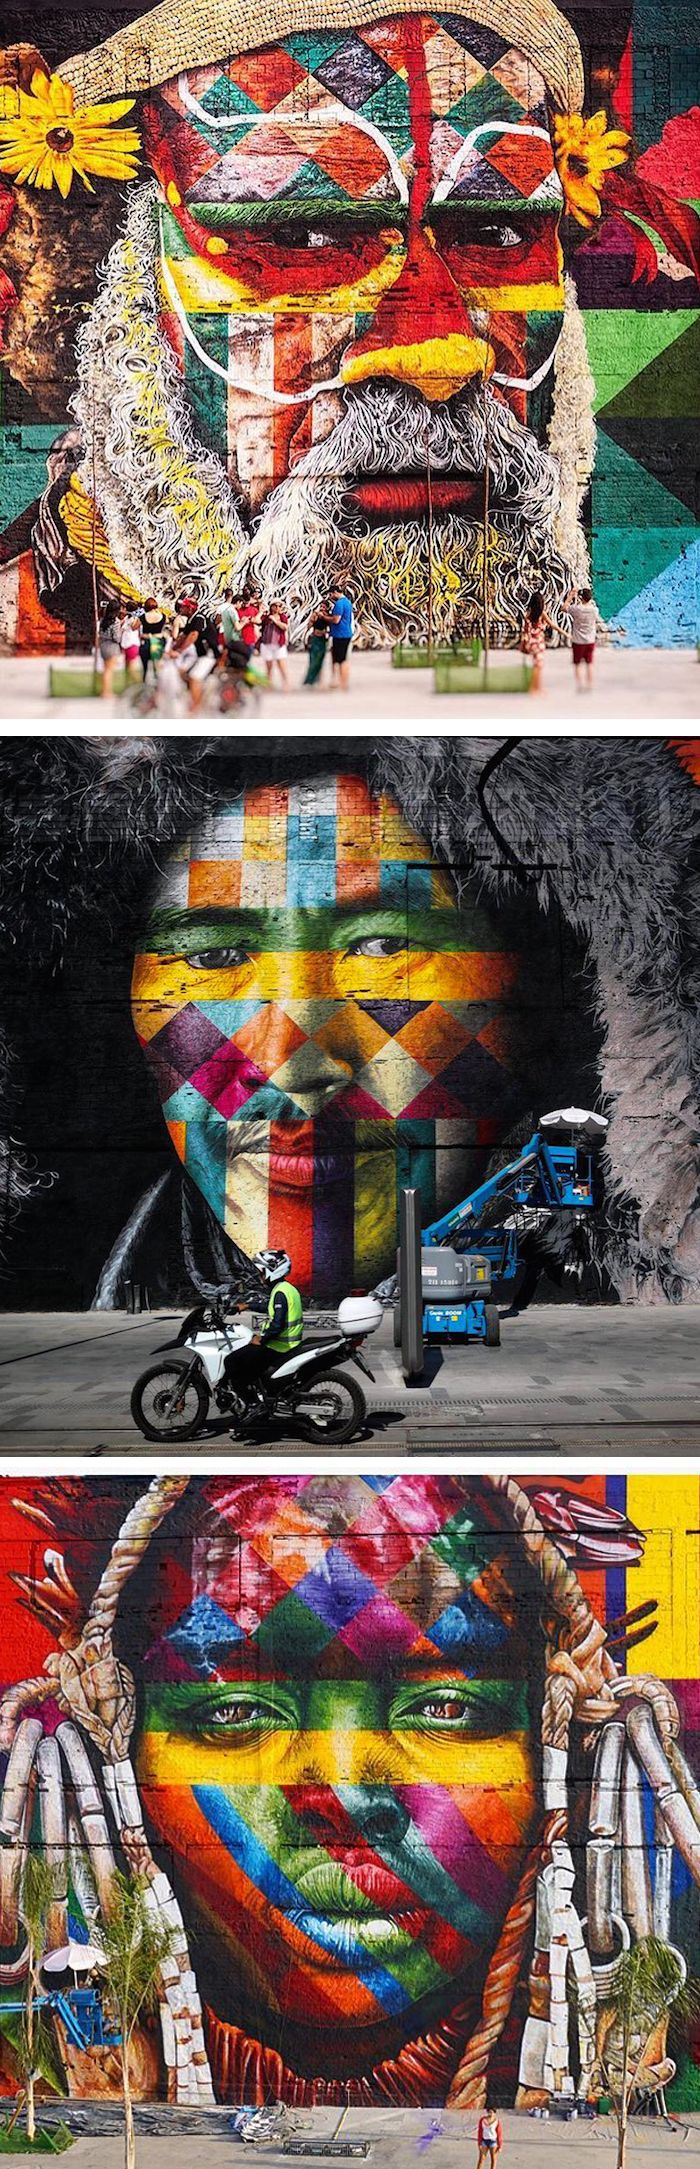 Brazilian Graffiti Artist Paints World's Largest Street Mural for the Rio Olympics